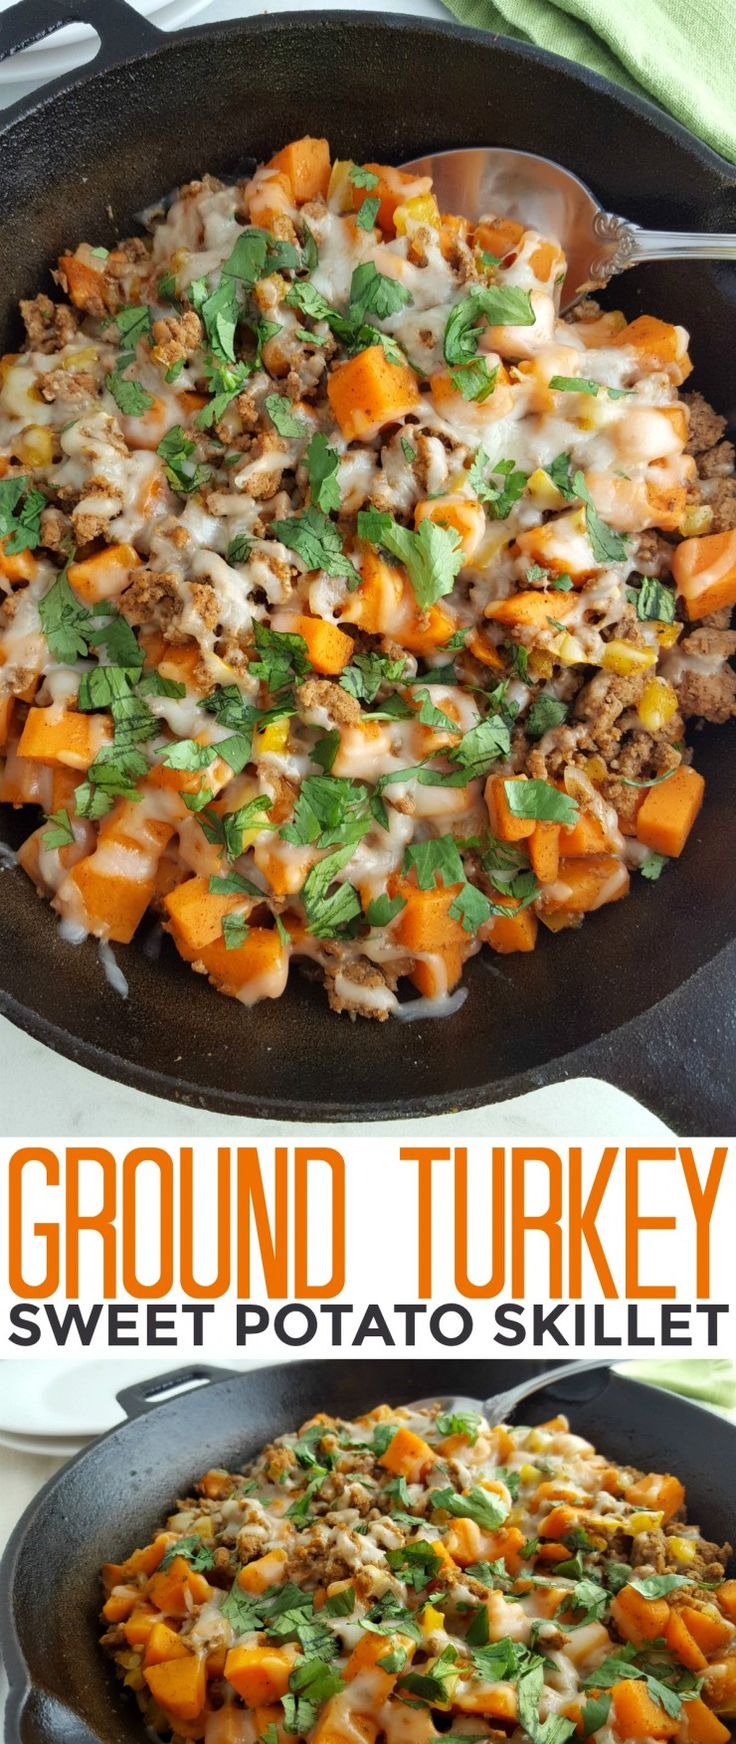 This Ground Turkey Sweet Potato Skillet is a healthy gluten free meal that is full of flavour and hearty enough to feed your family quickly on busy weeknights!